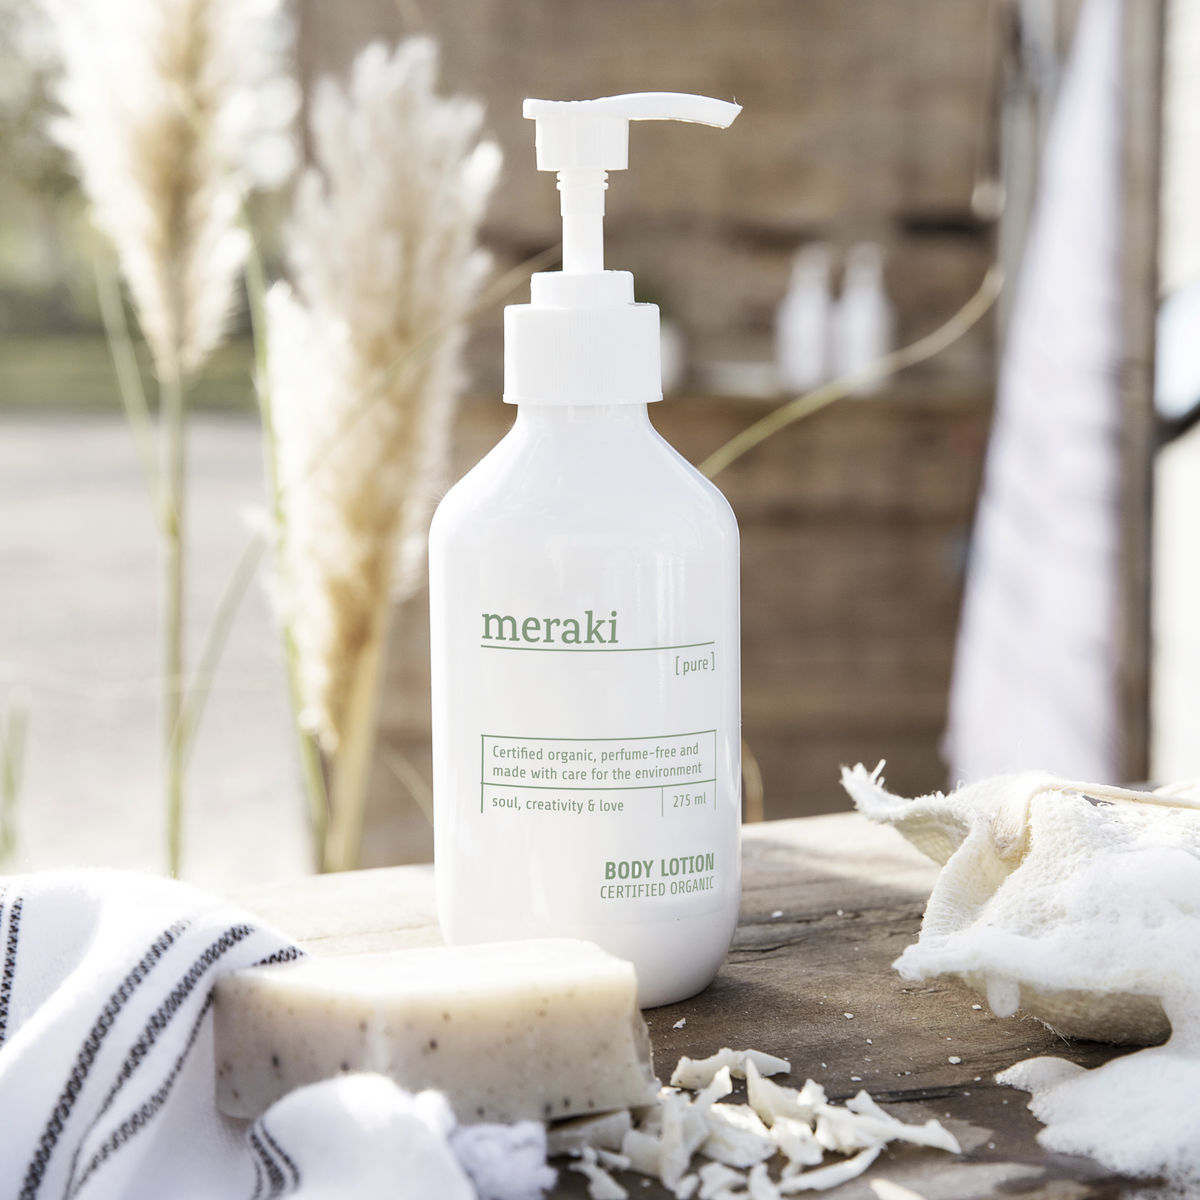 MERAKI | PURE - BODY LOTION